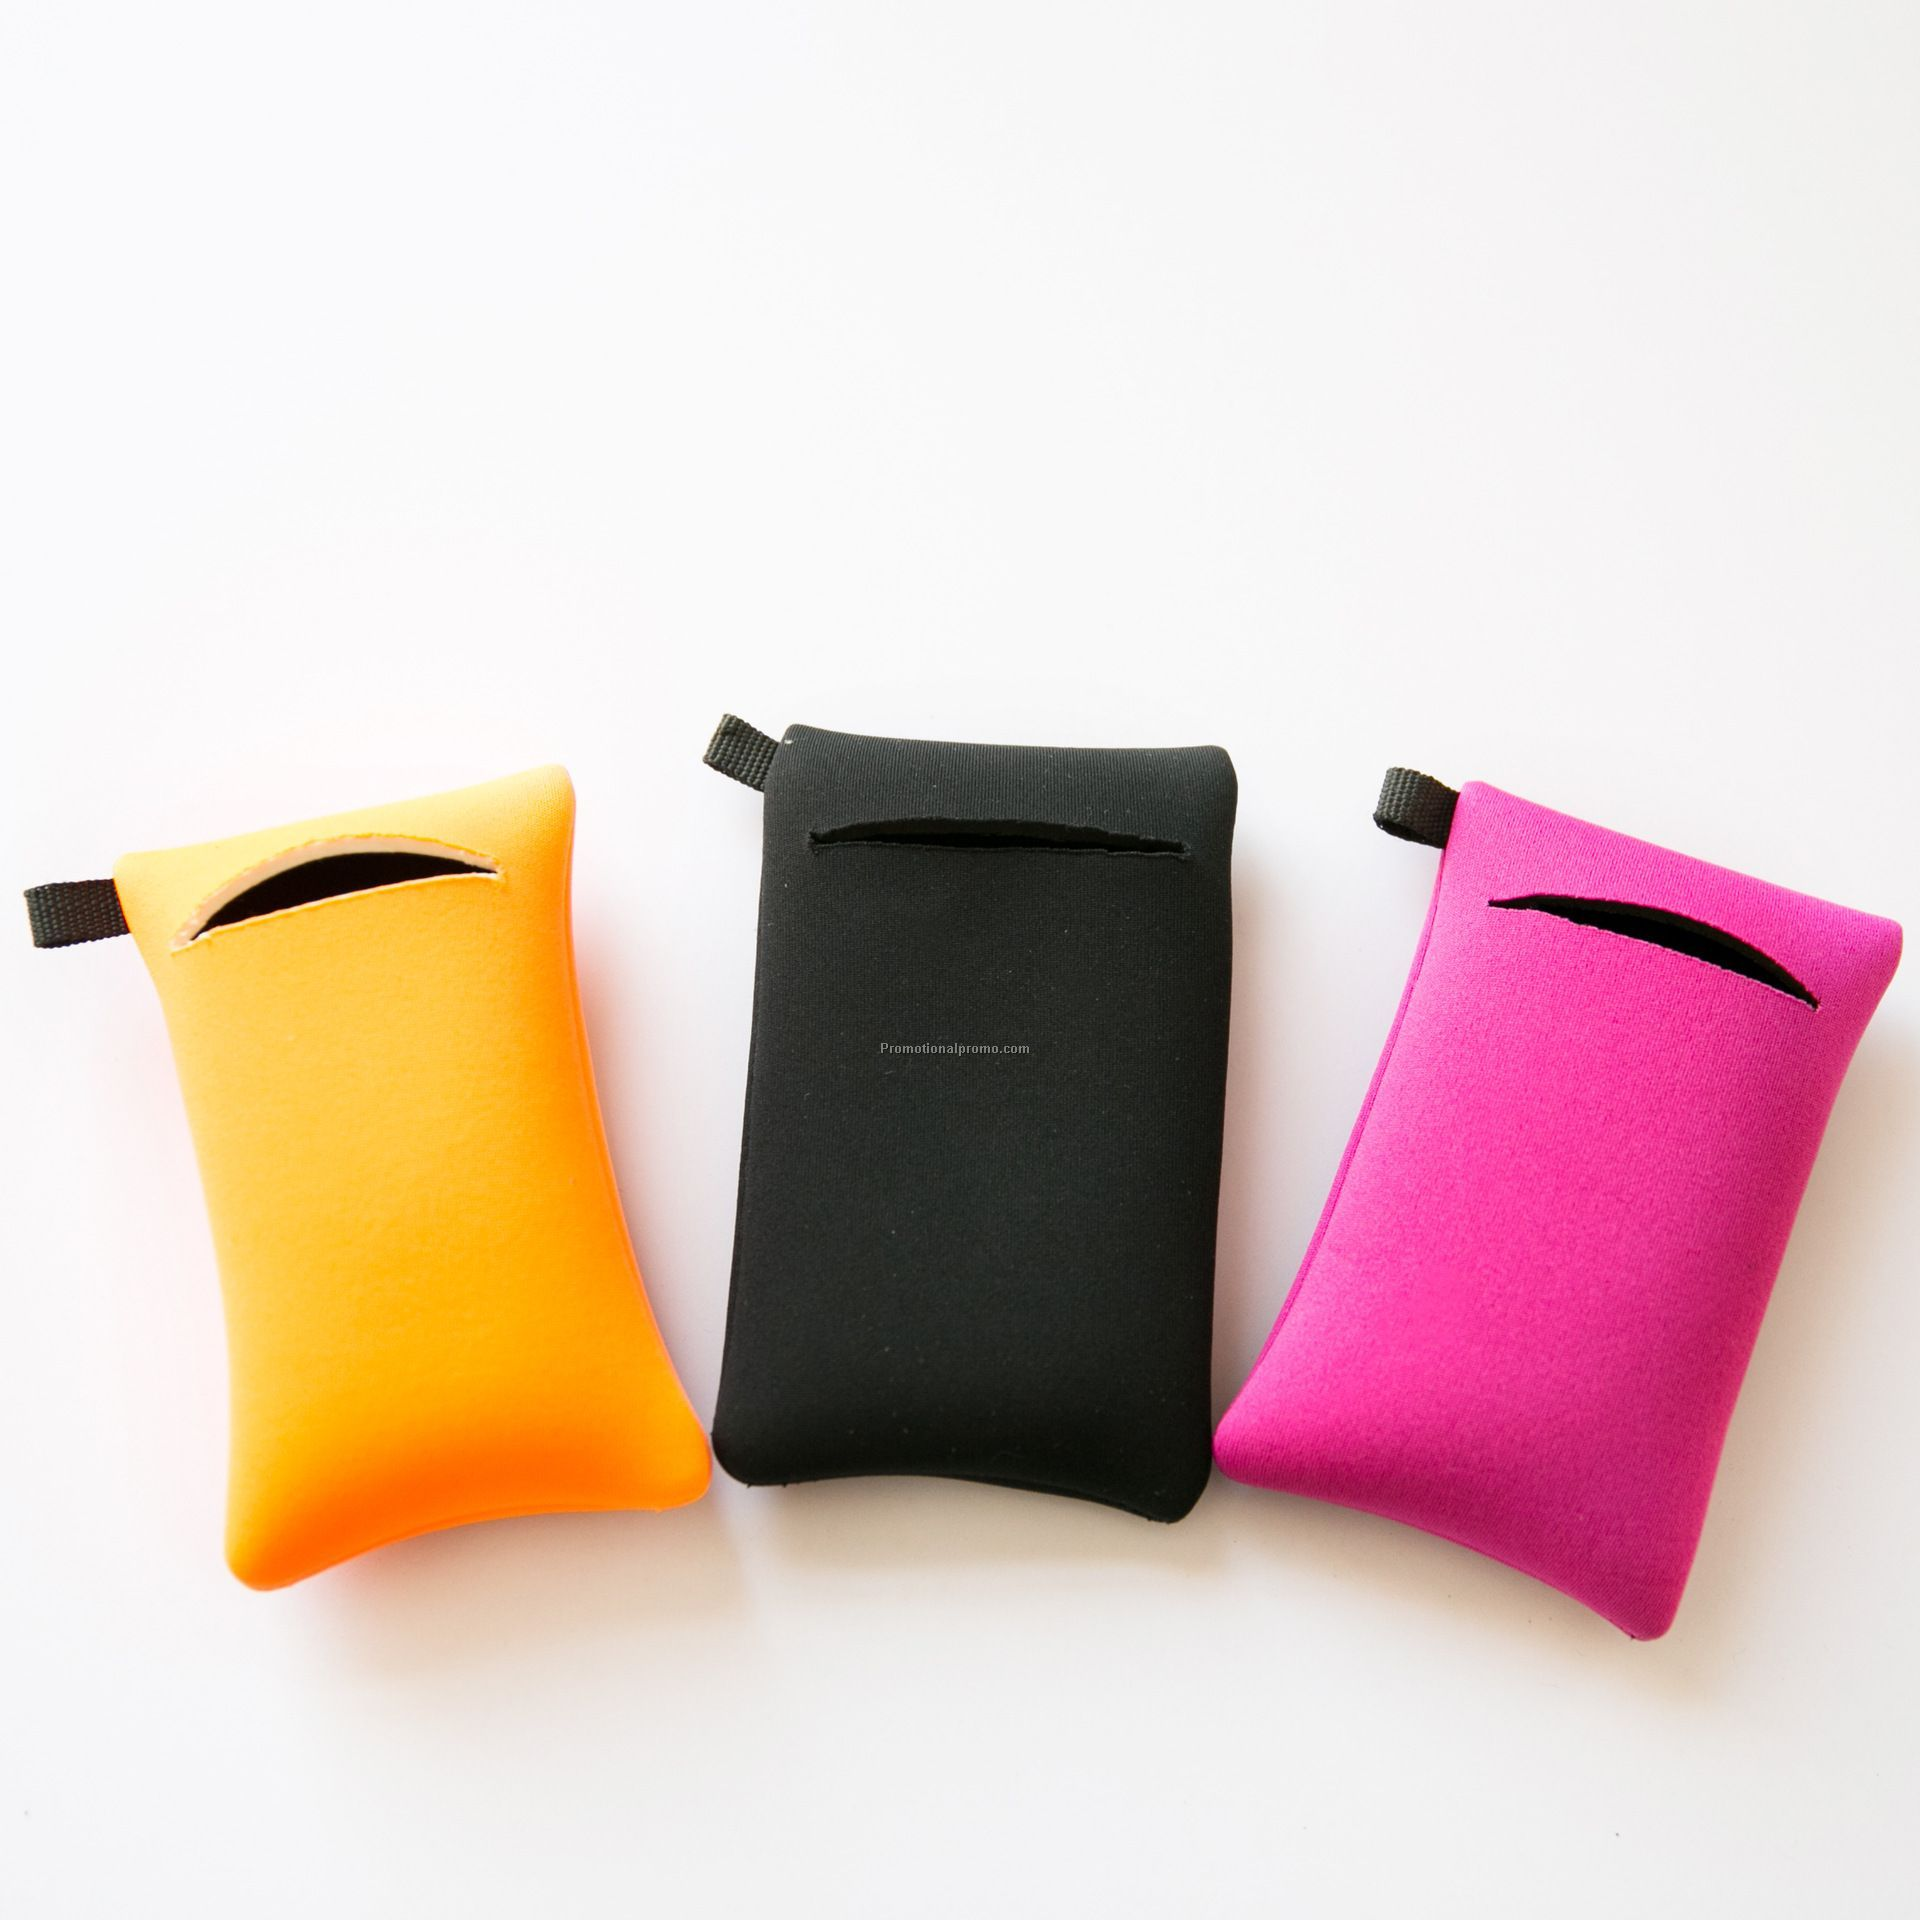 Neoprene phone bag